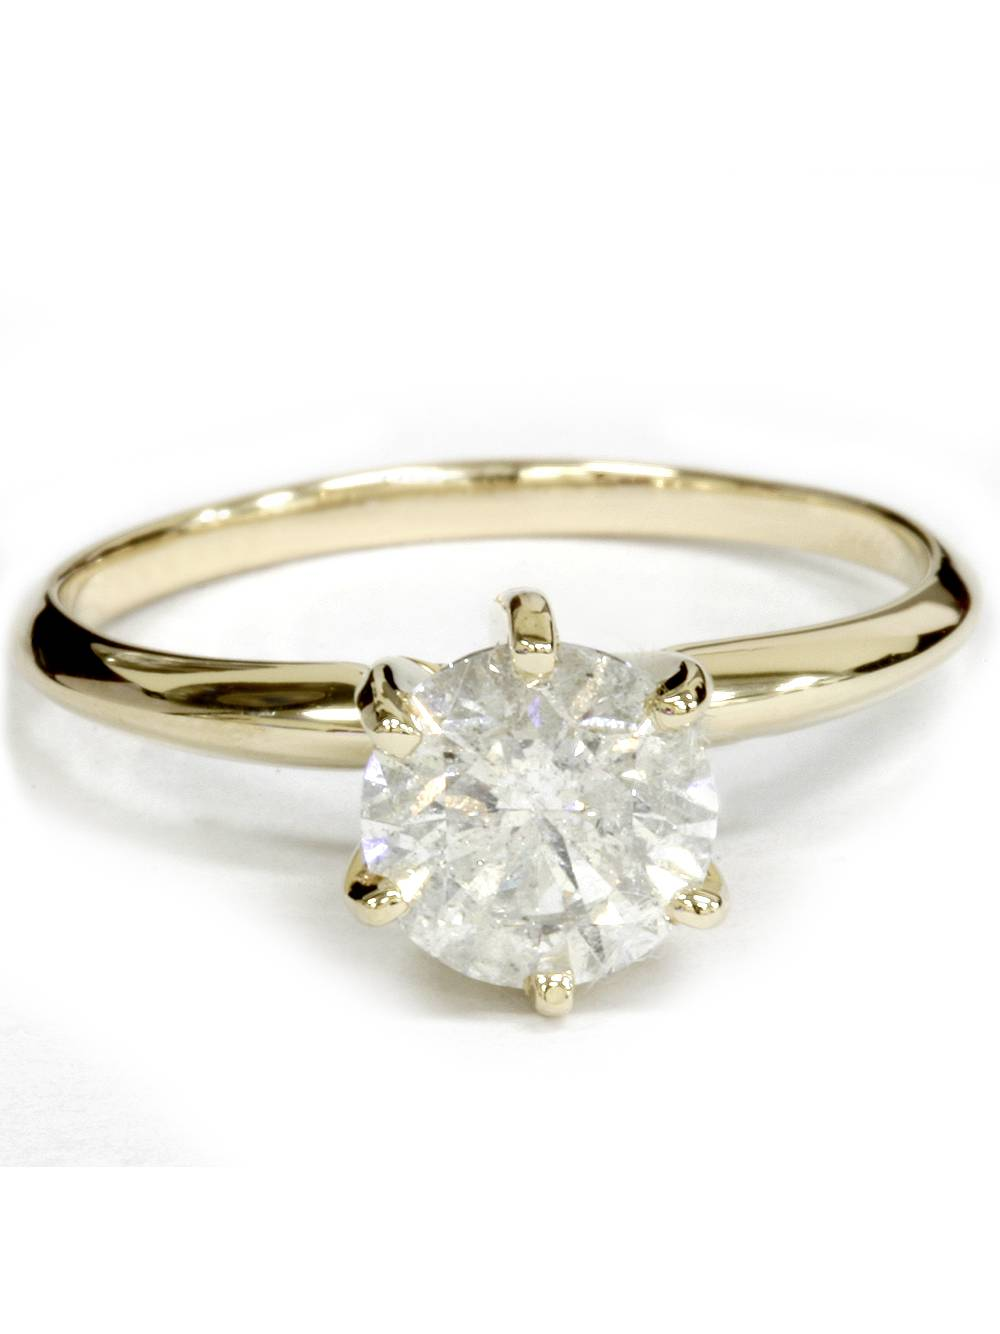 G/SI Yellow Gold 1ct Round Solitaire Diamond Engagement Ring 14K